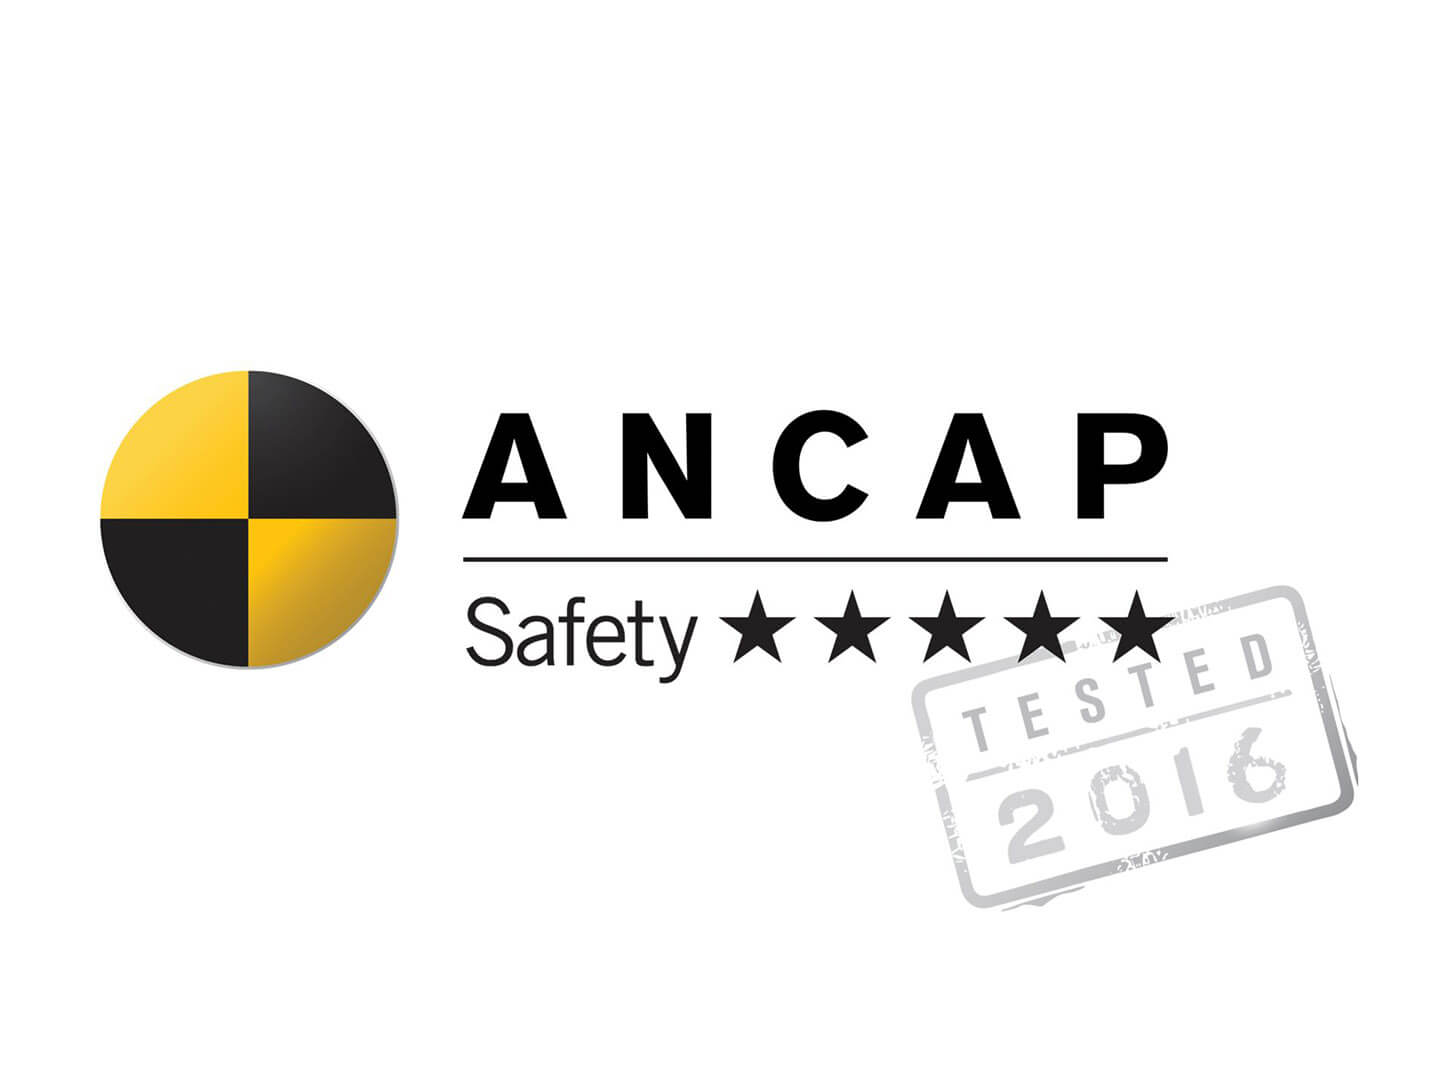 <strong>5 Star</strong> Safety Image